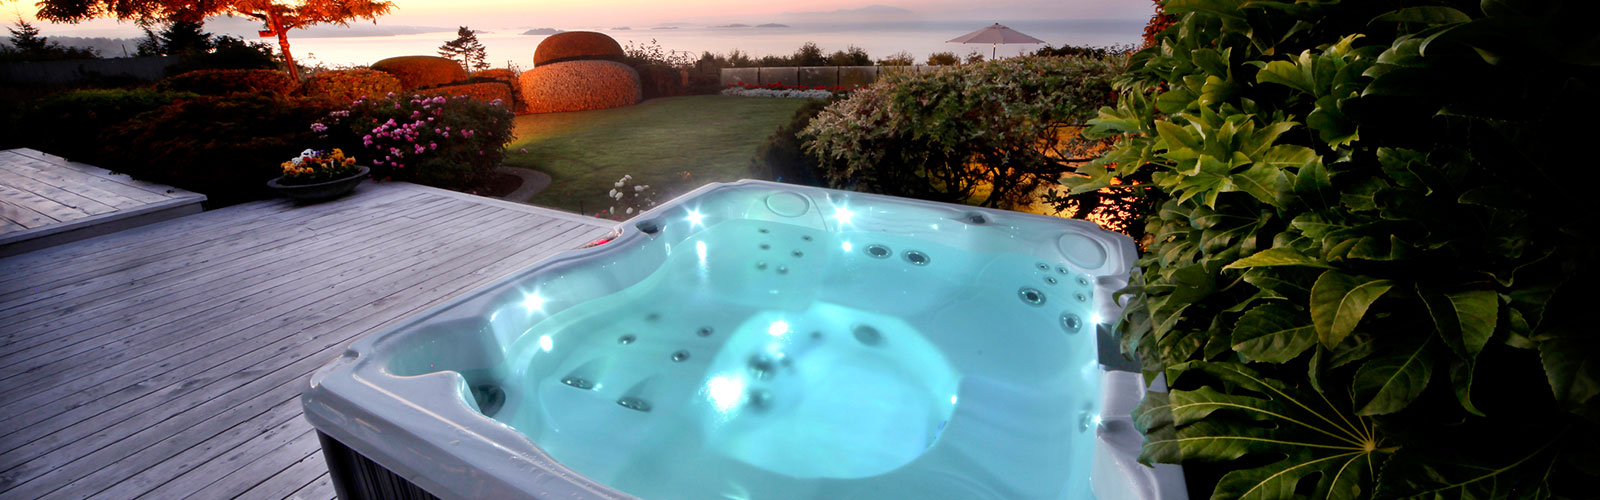 Spas and Hot Tubs Dealers in Grand Rapids and Holland MI - Zagers Pool and Spa